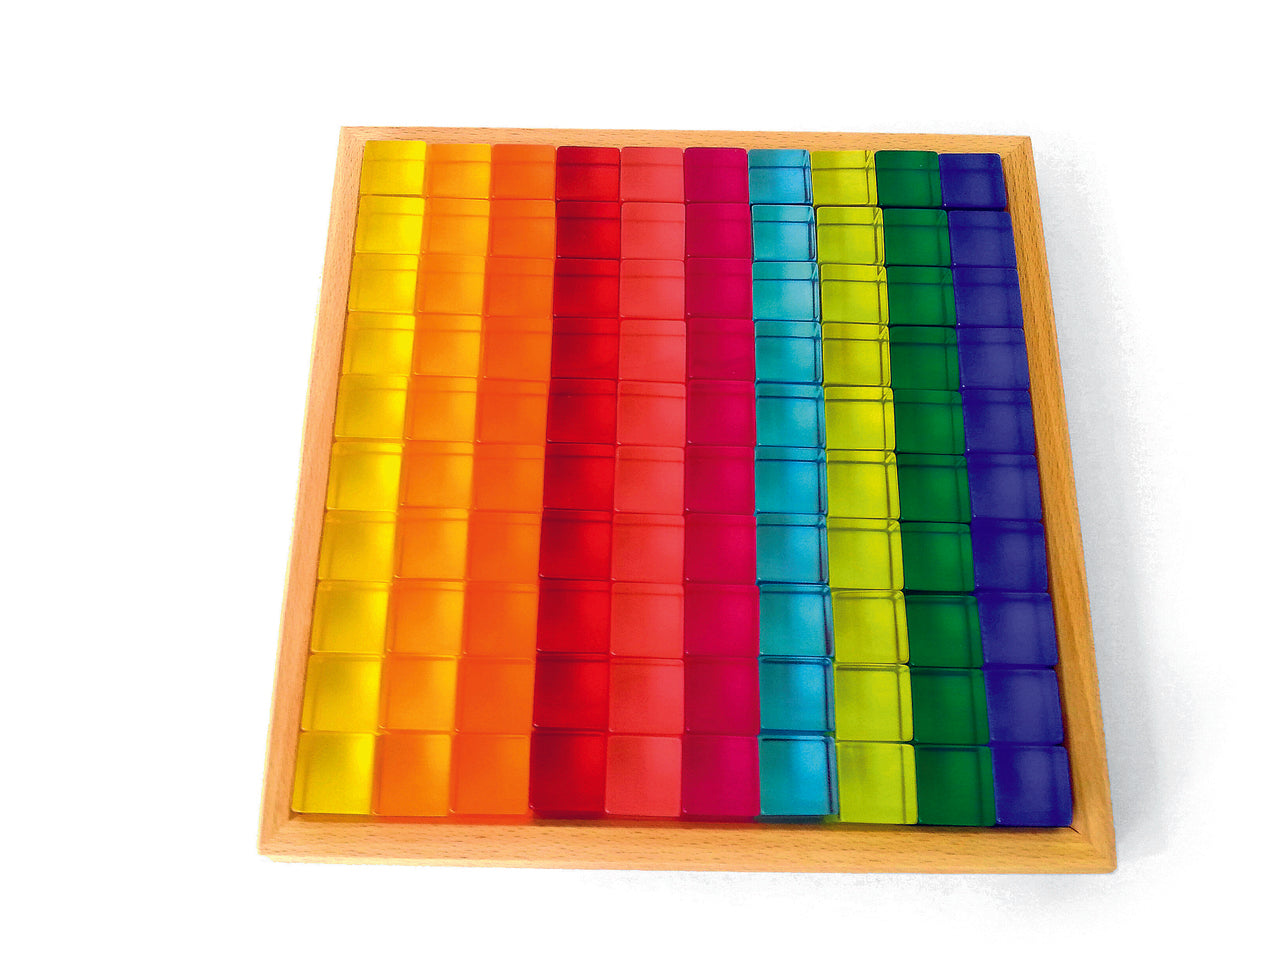 Bauspiel Acrylic Blocks 50pcs